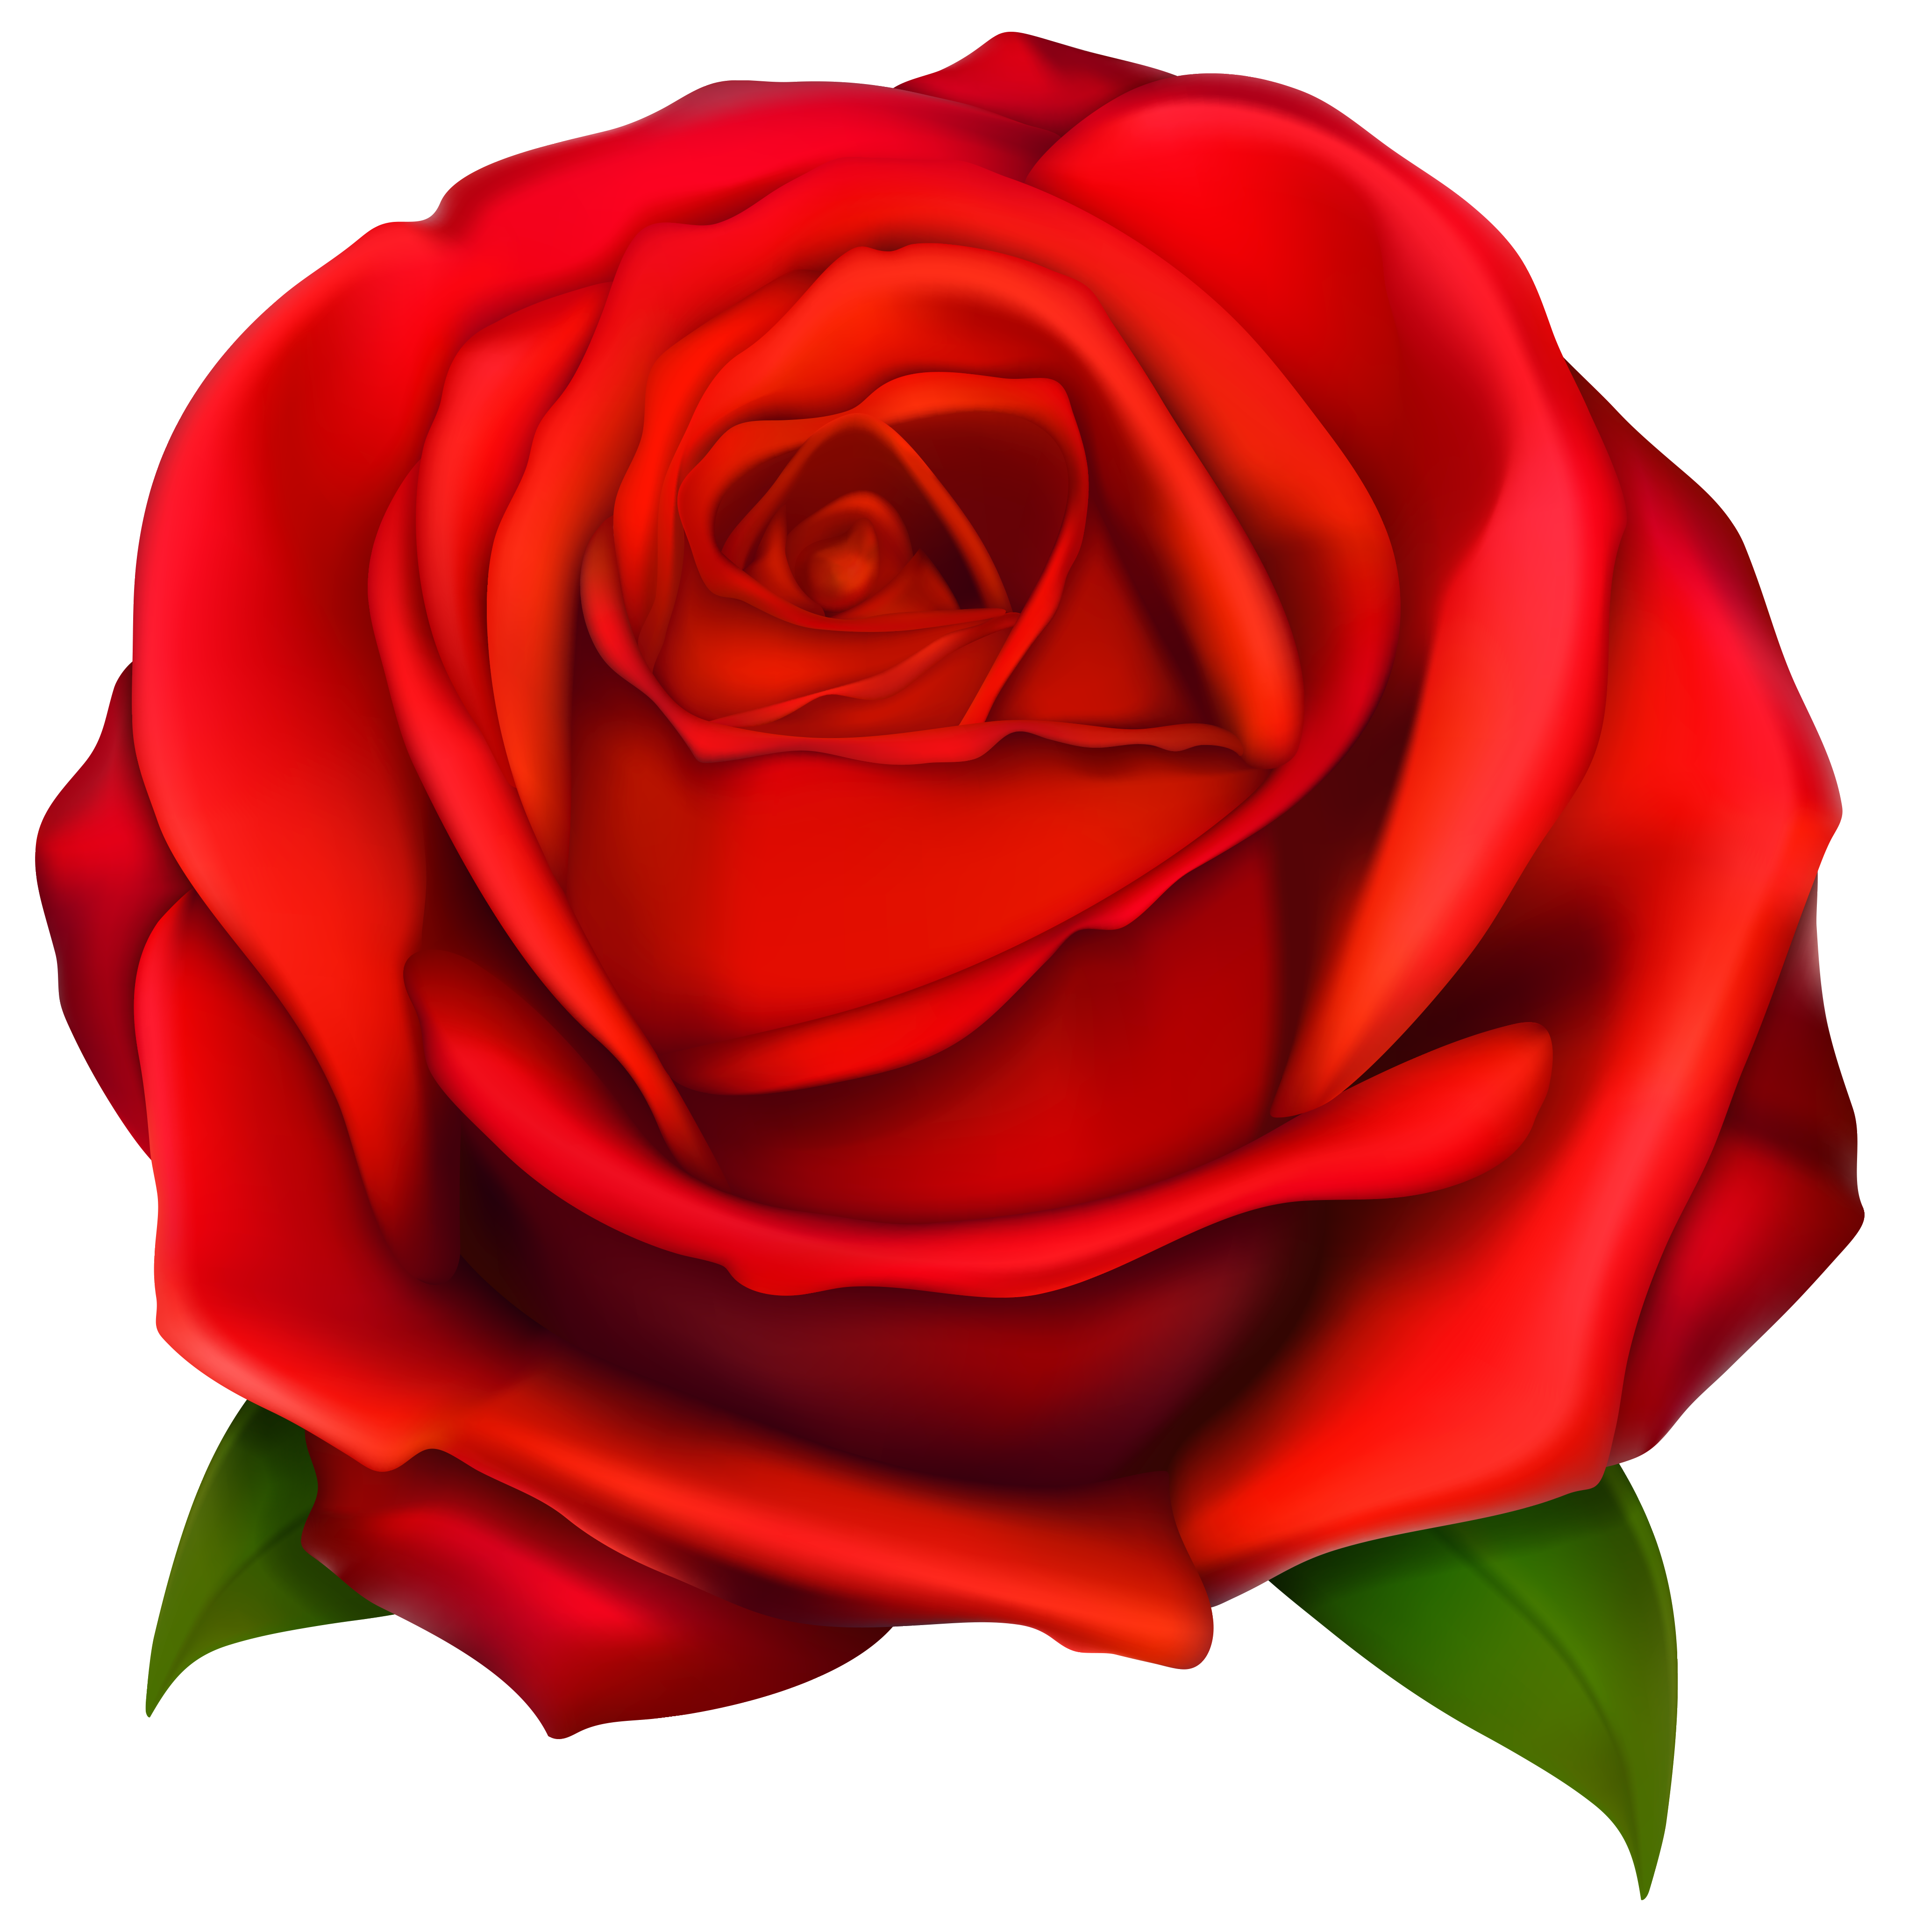 Image of clip art red rose 2 .